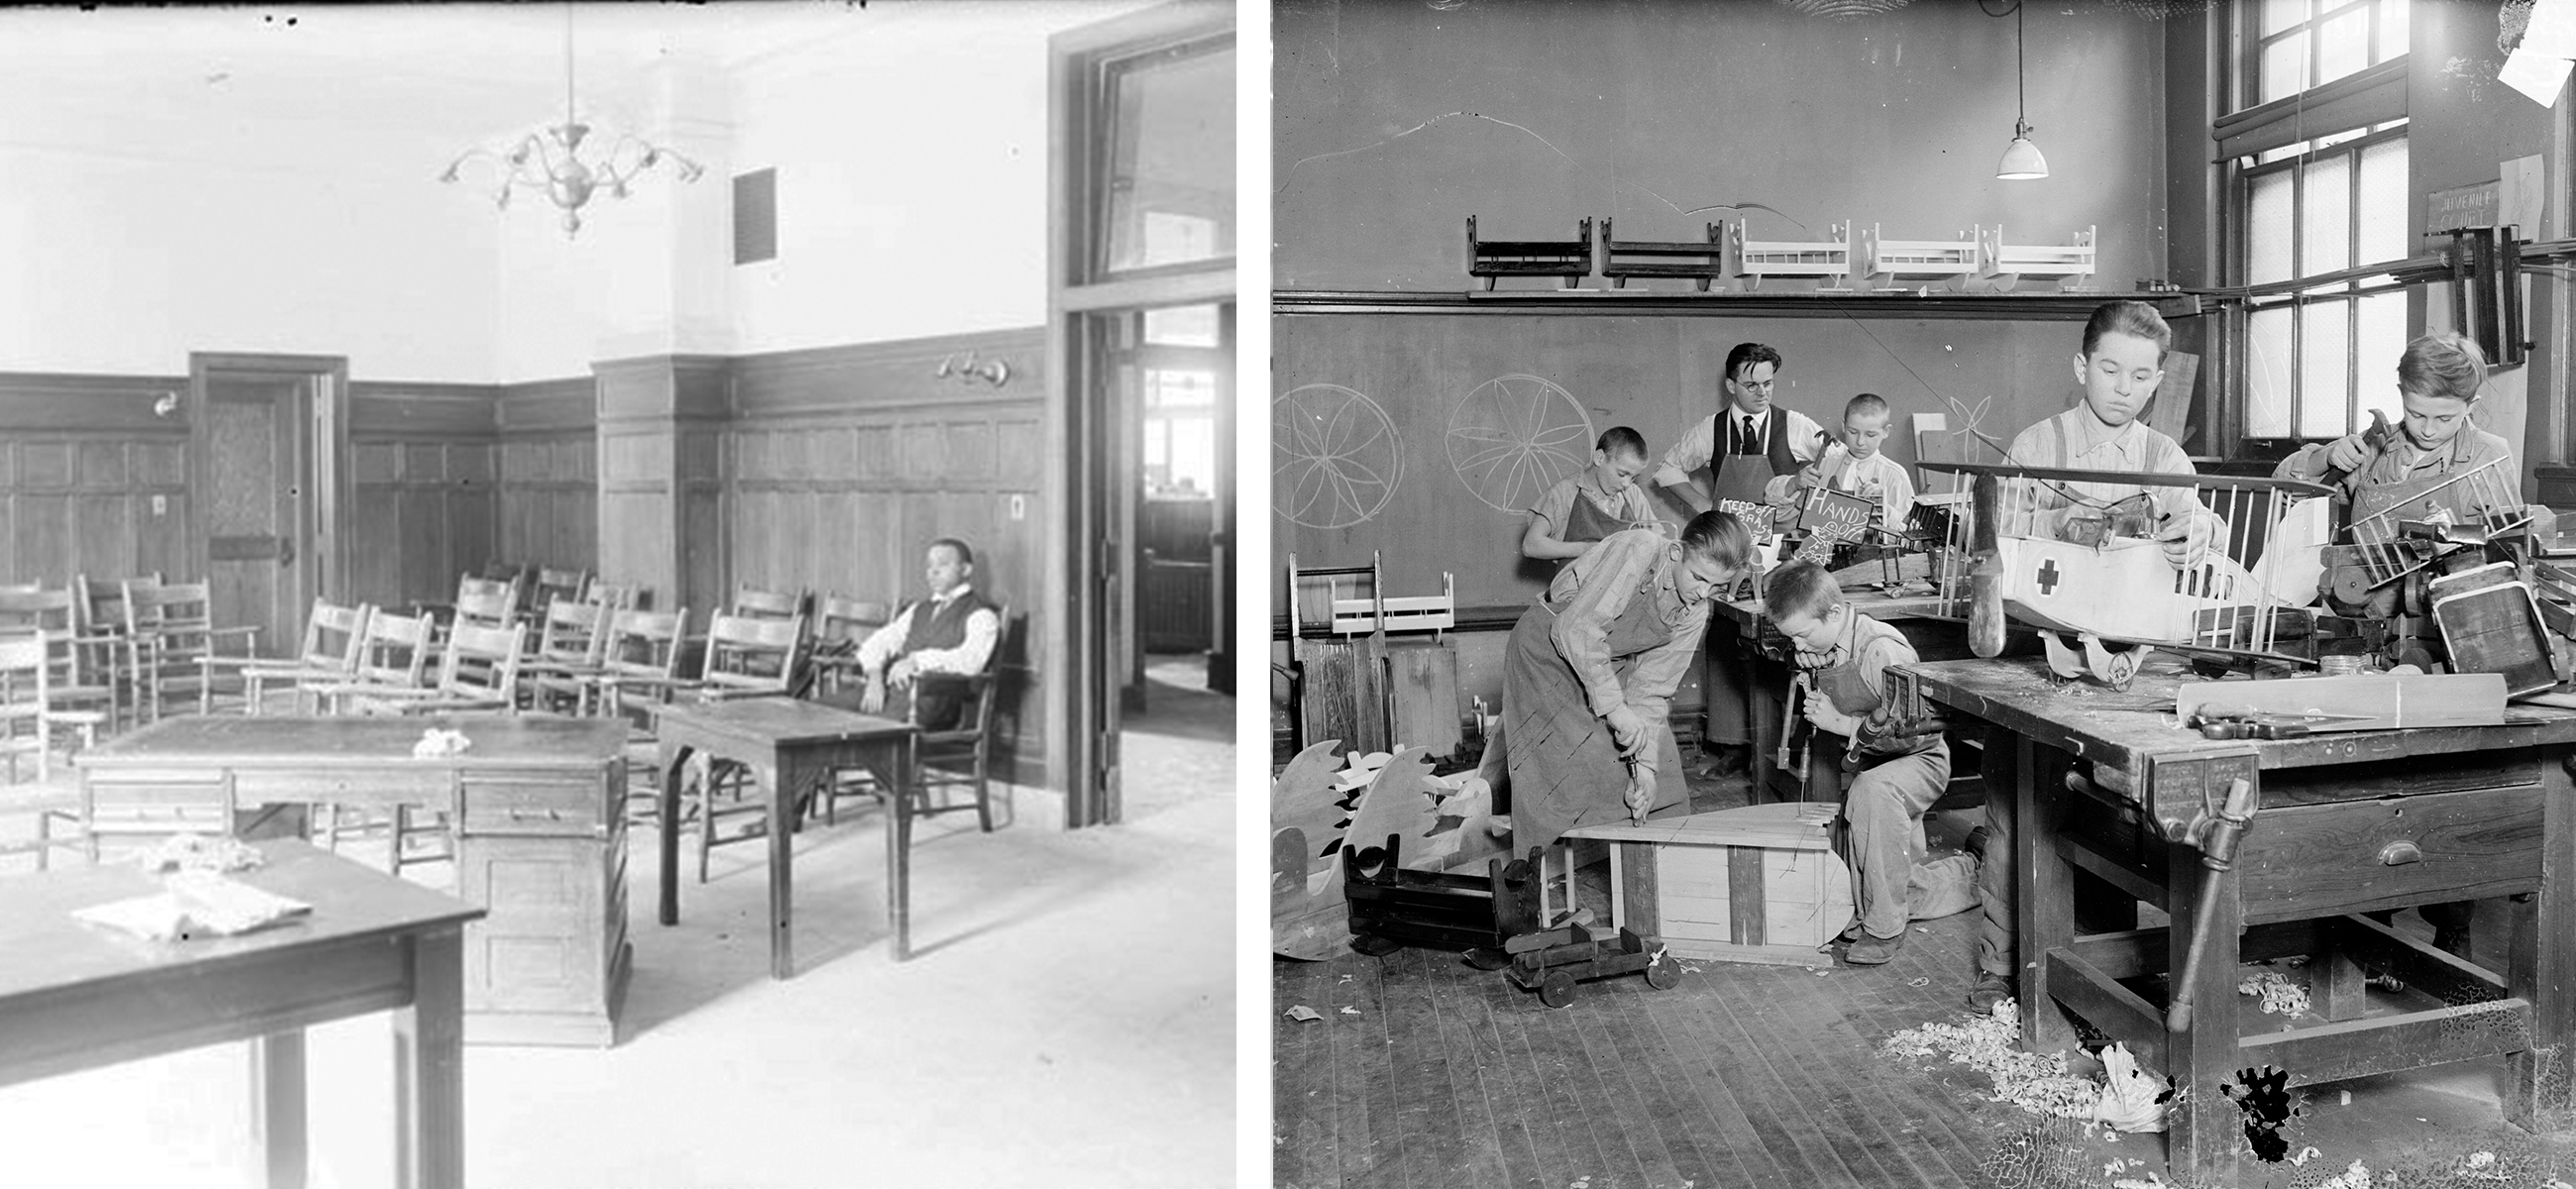 The courtroom (left photo) was adjacent to a detention center (right). The detention center included a workshop where young boys could do woodworking. (Courtesy Chicago History Museum, DN-0005150 and DN-0071323)